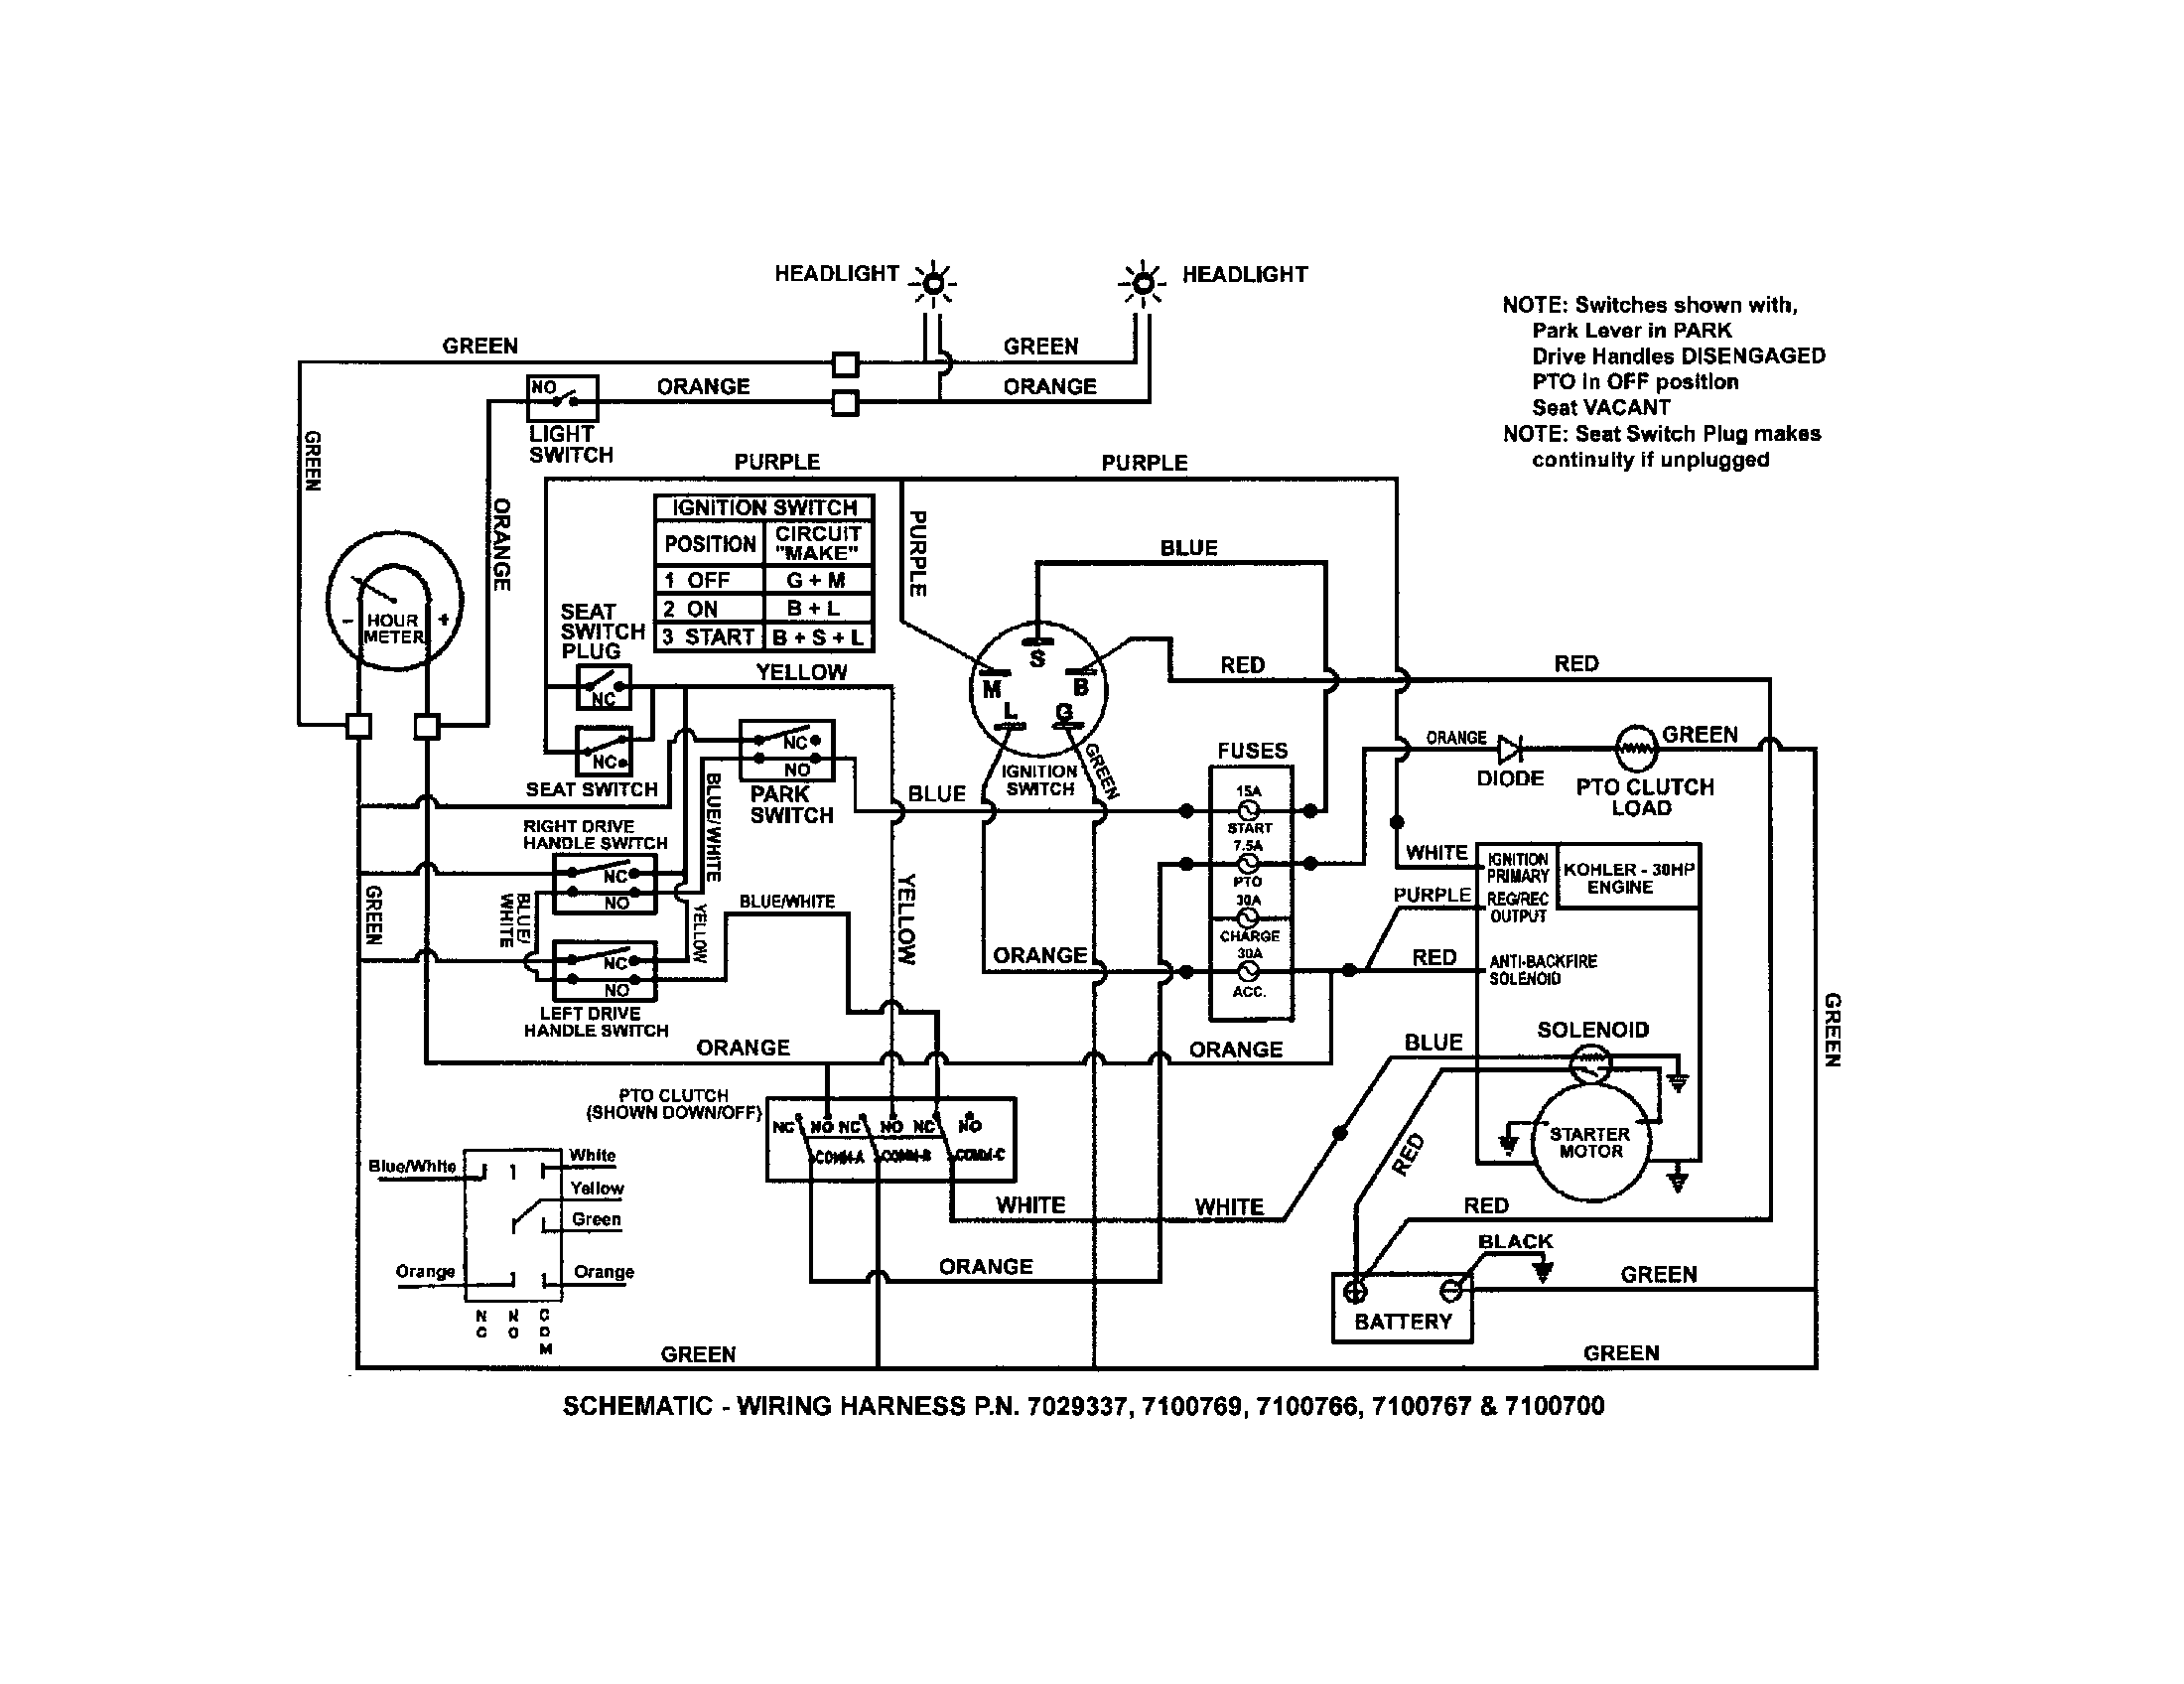 1955 chevy truck headlight switch wiring diagram